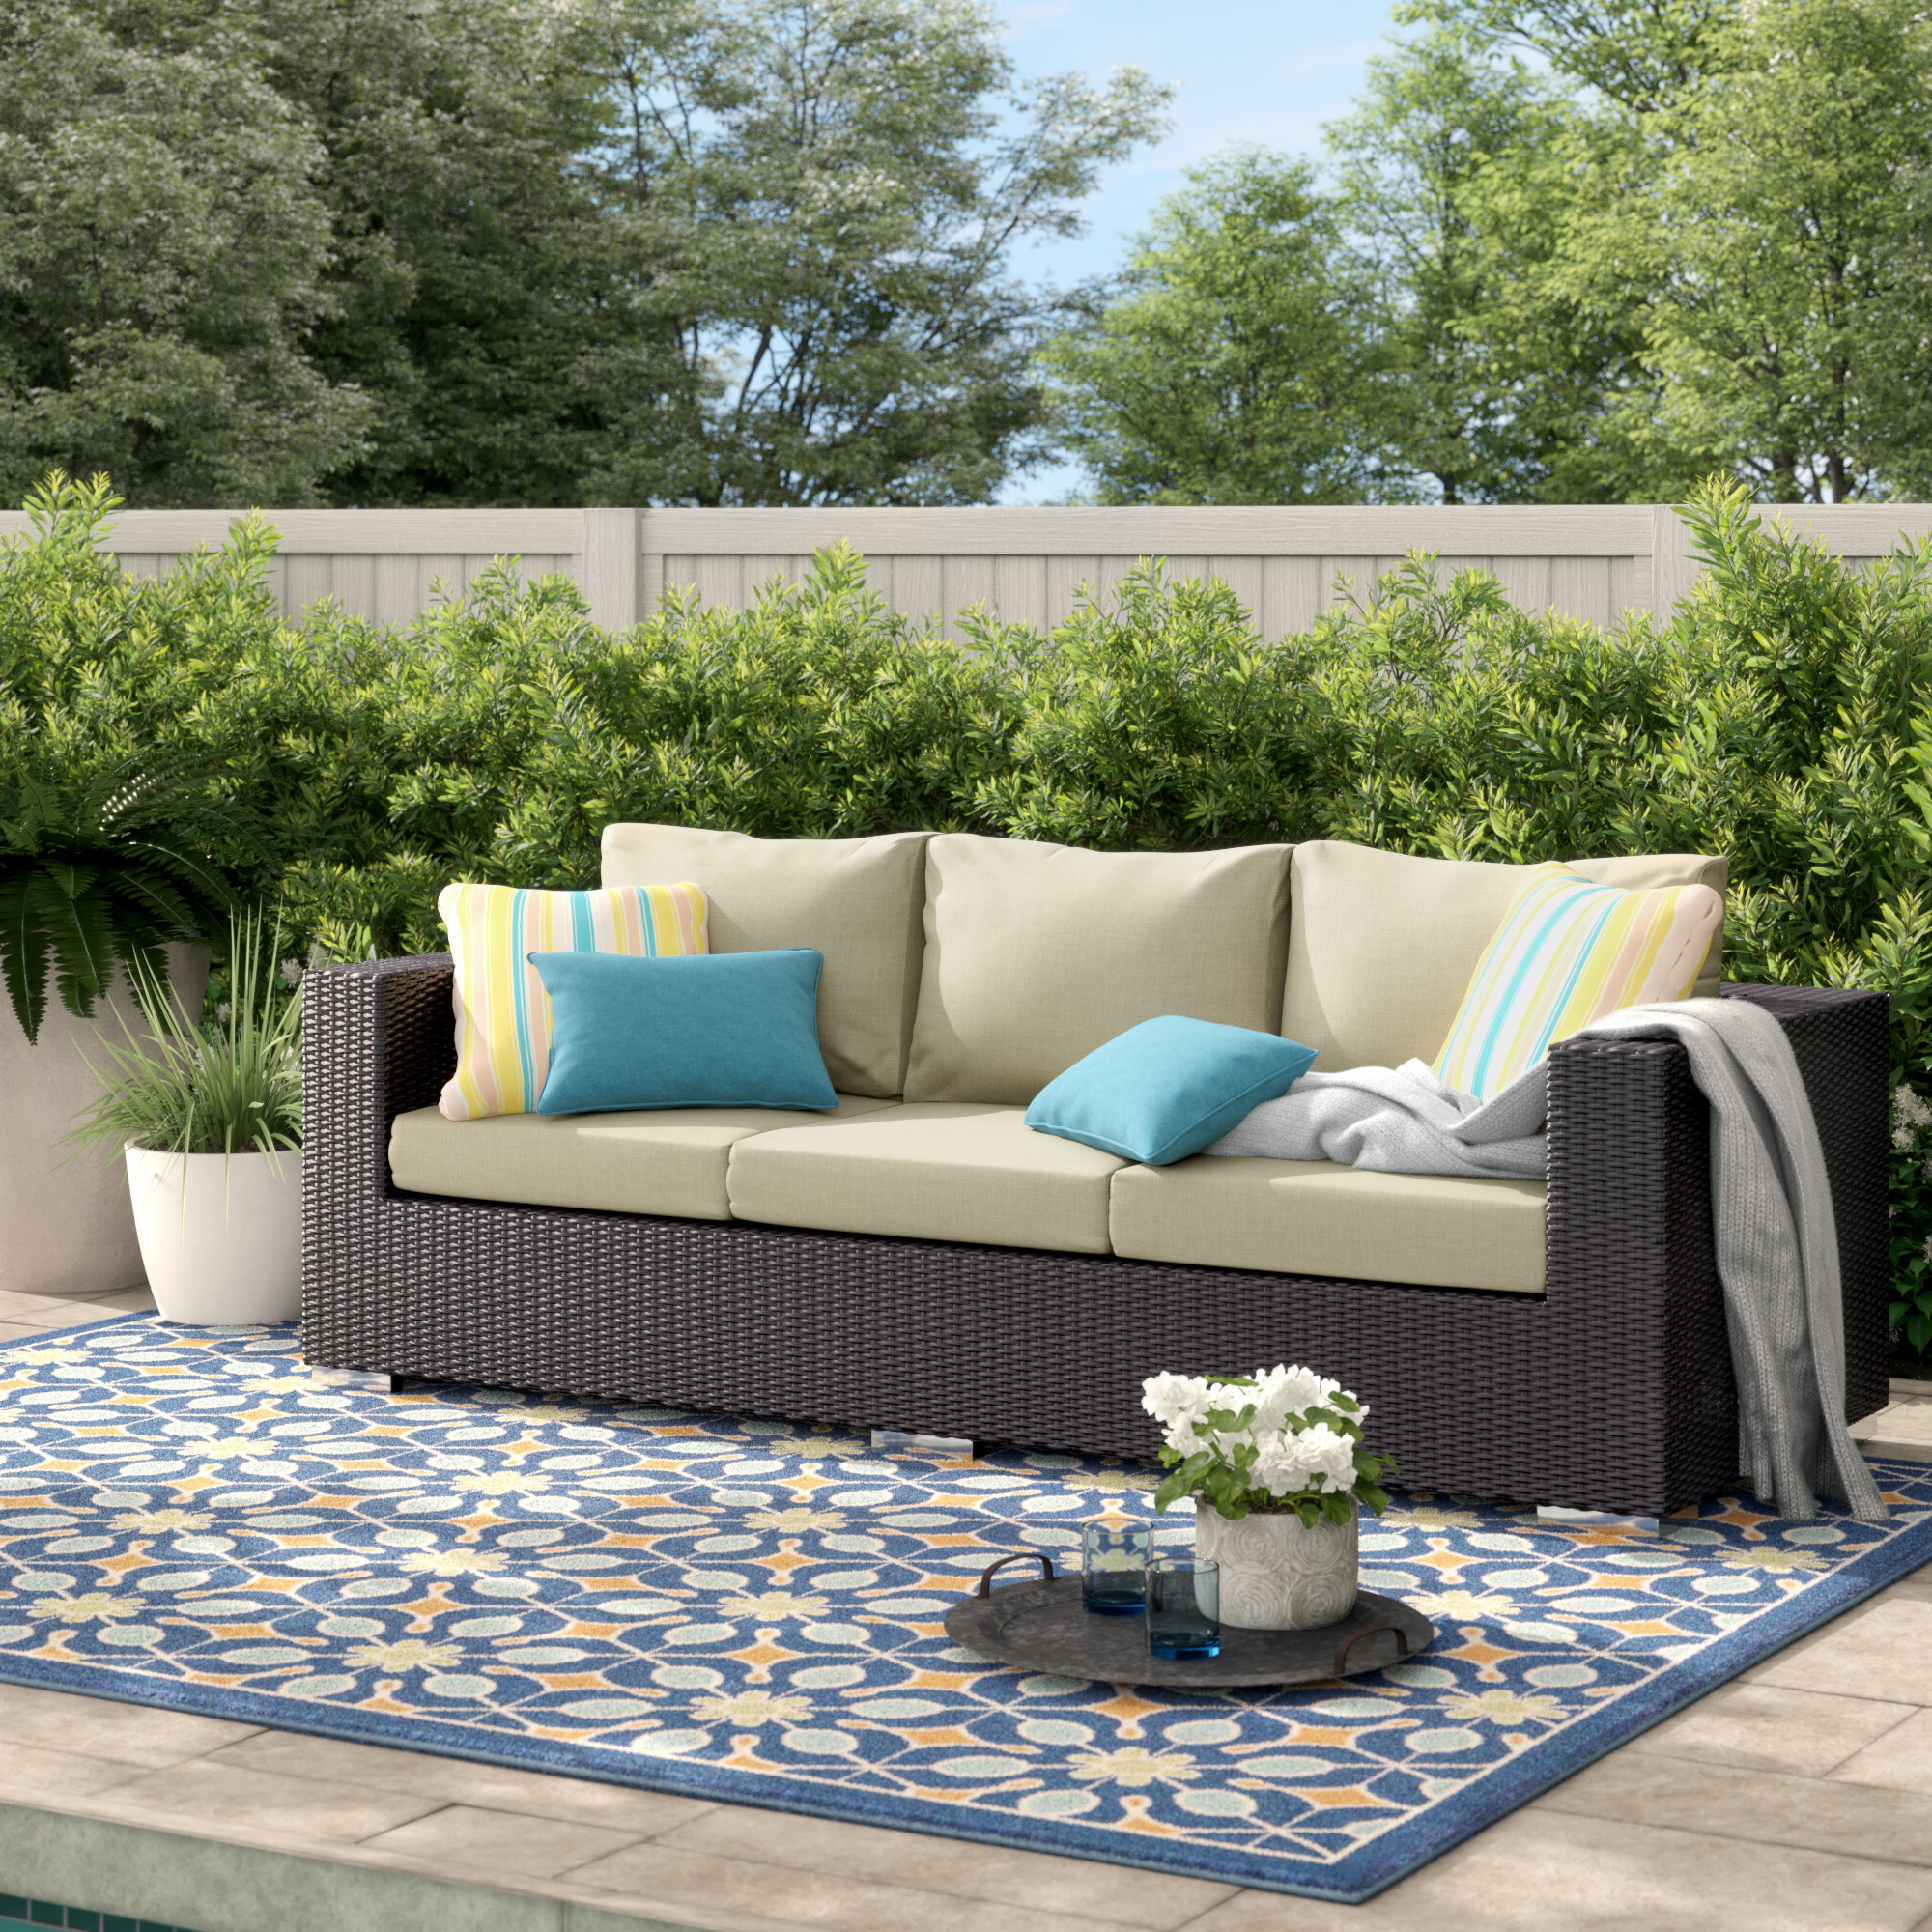 Popular Silloth Patio Sofas With Cushions Within Small Outdoor Sofa (View 11 of 20)